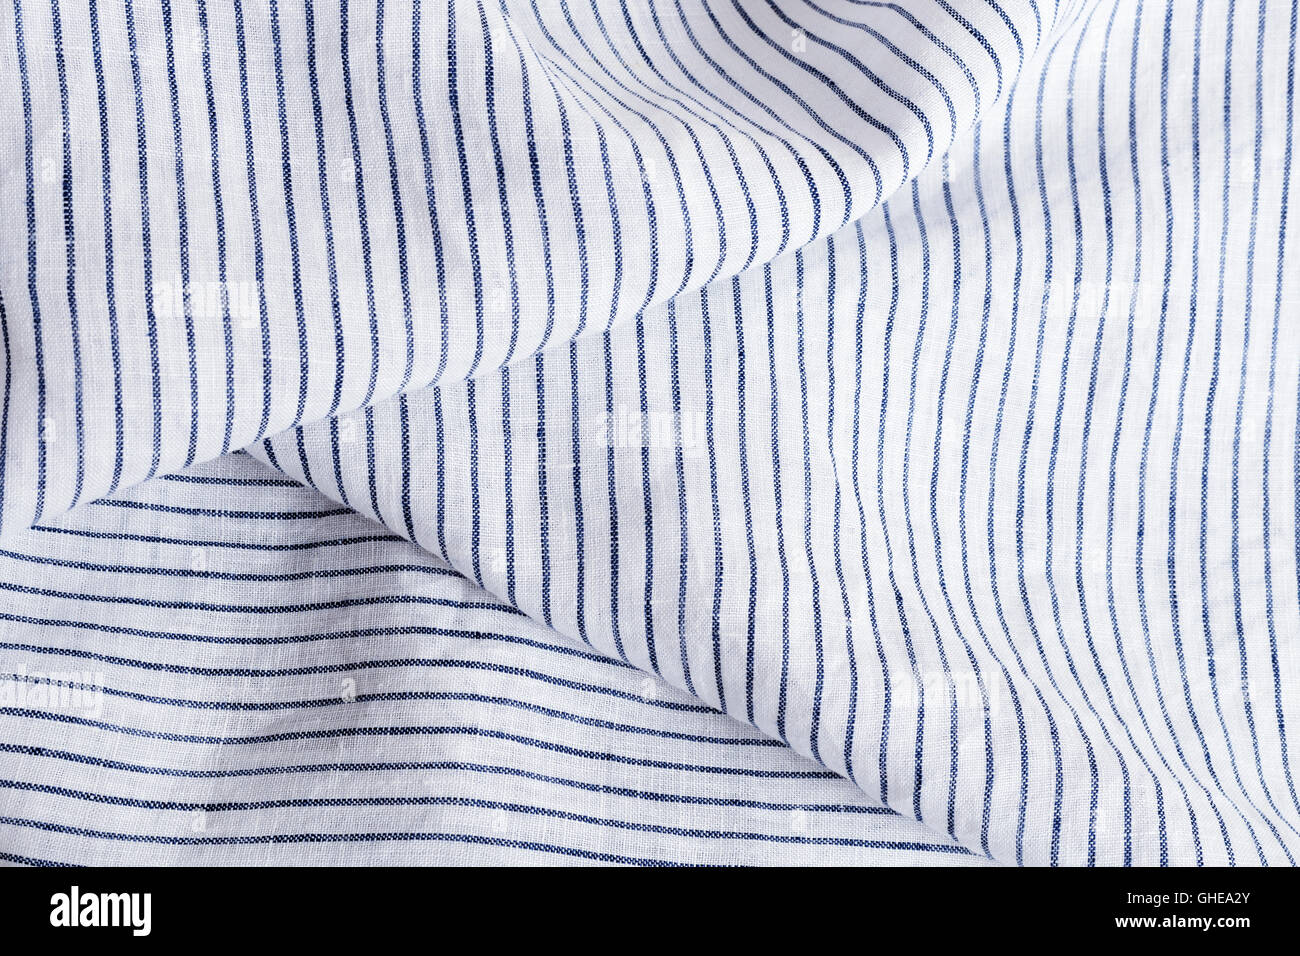 cf862be92d Soft fabric with white and blue stripes texture and background Stock ...